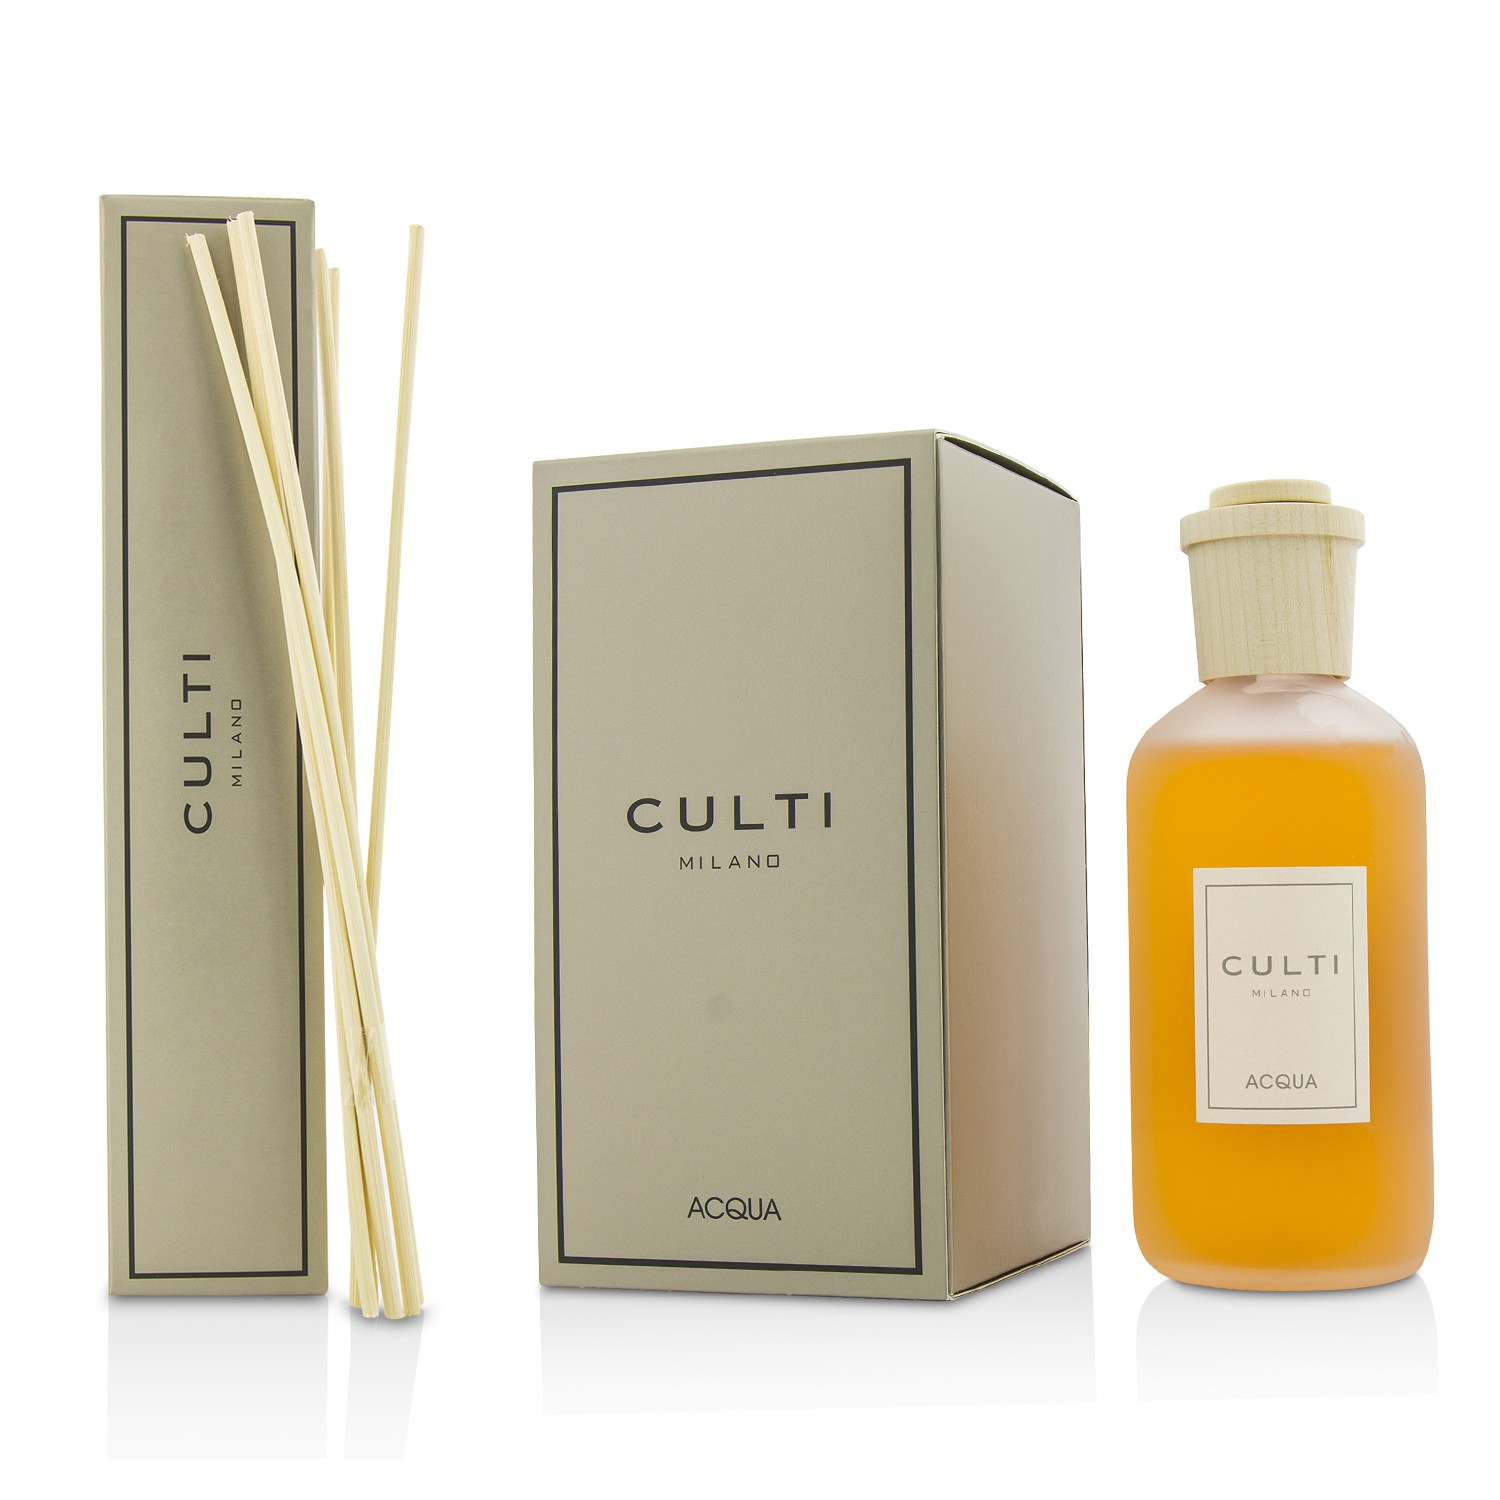 Culti Stile Room Diffuser Acqua (New Packaging)/8 33oz